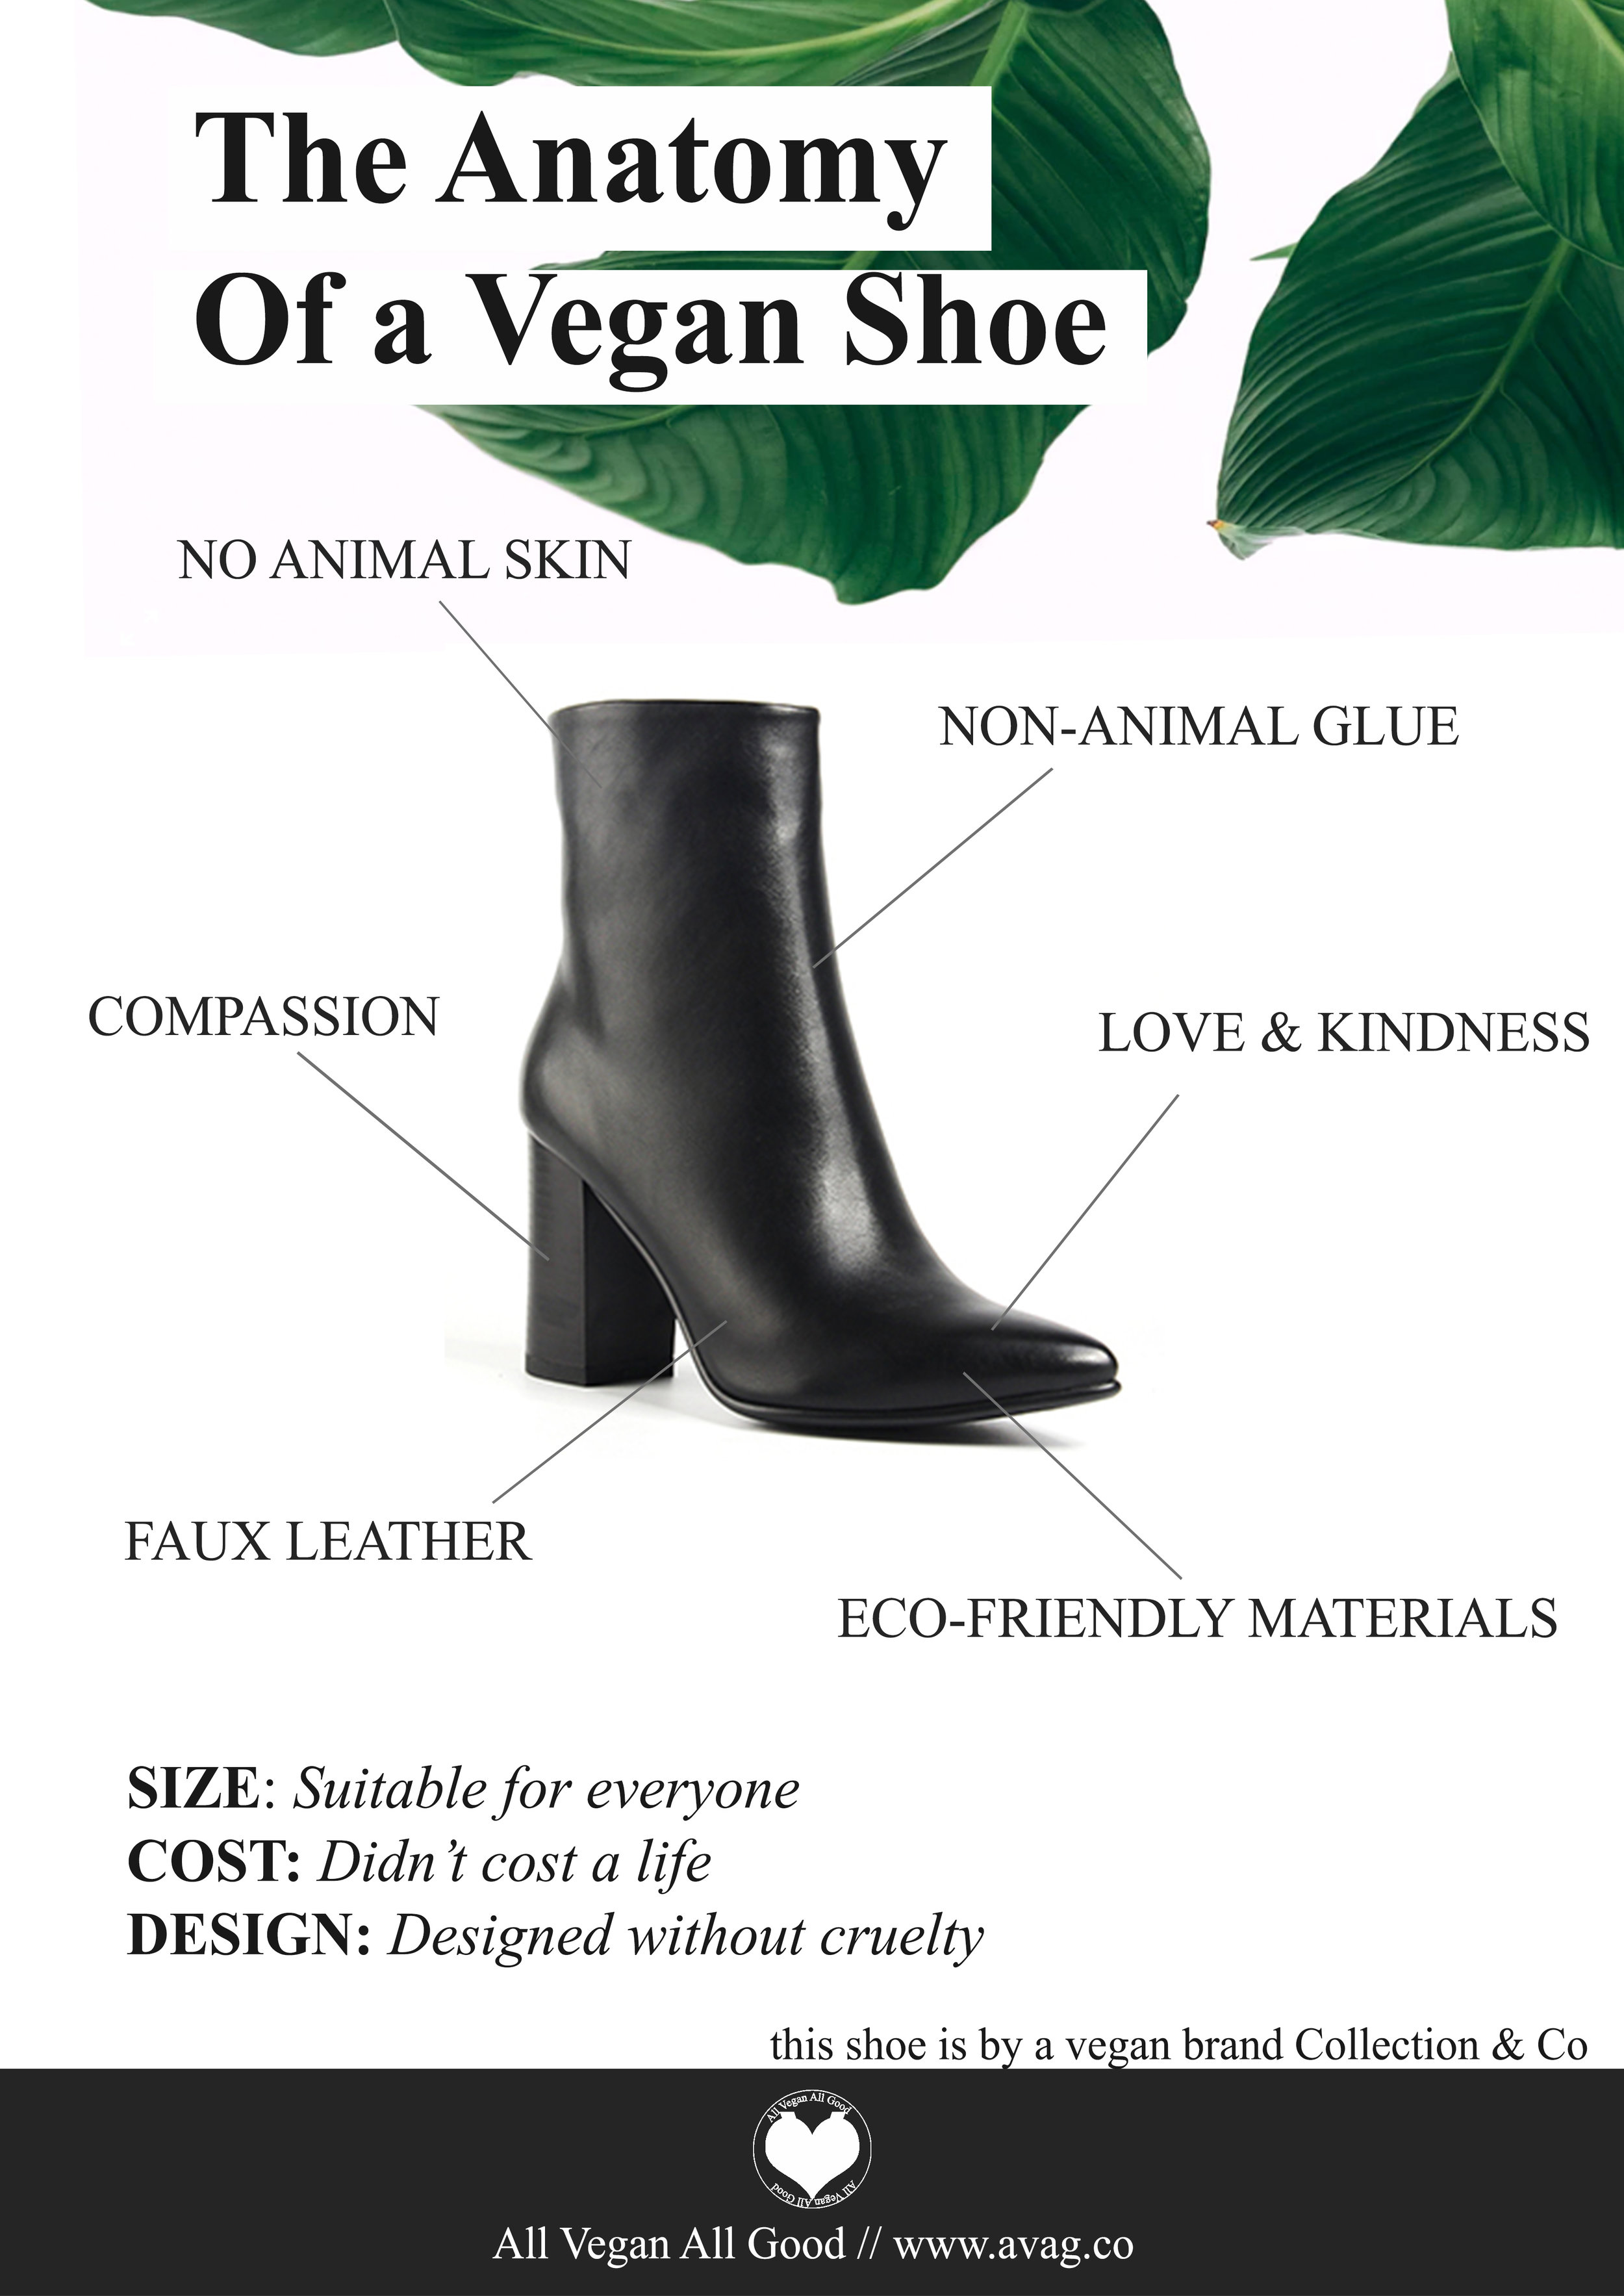 the anatomy of a vegan shoe.jpg